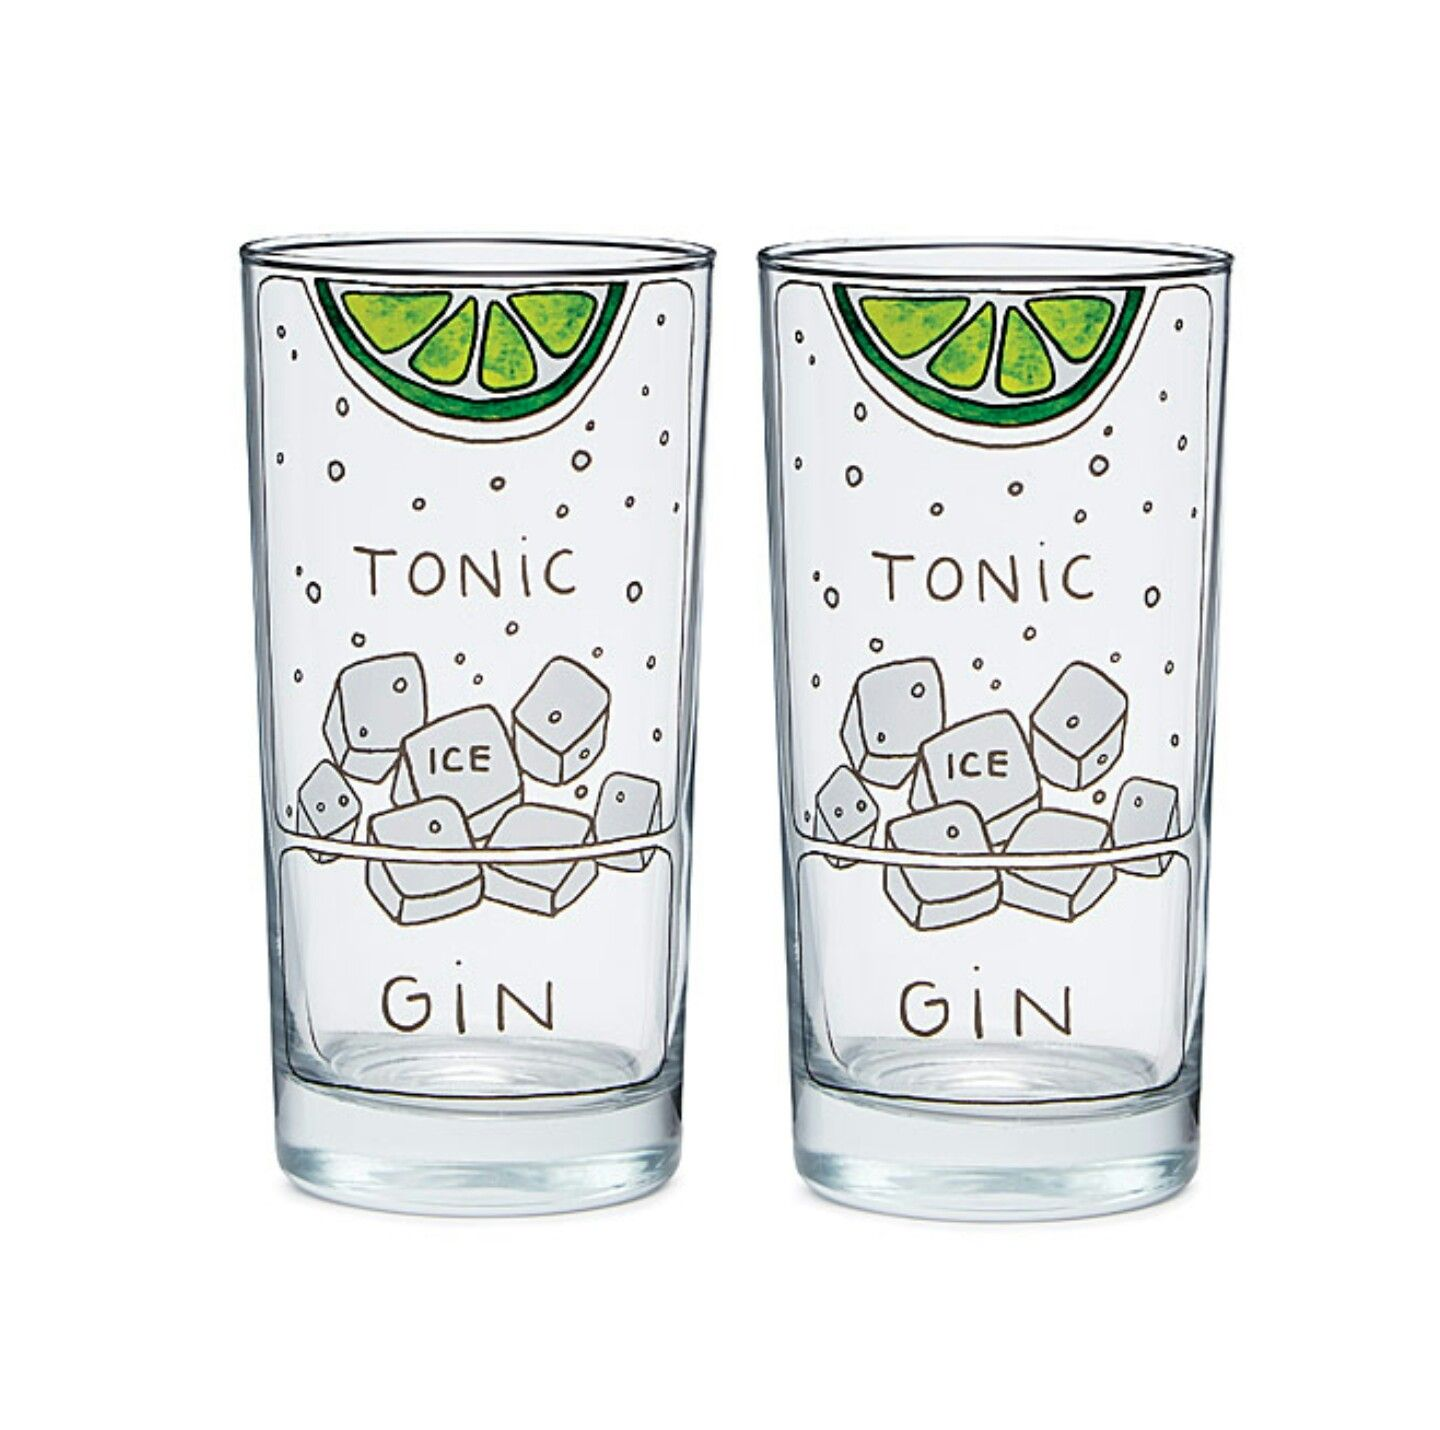 Gin and Tonic Glasses by Alyson Thomas